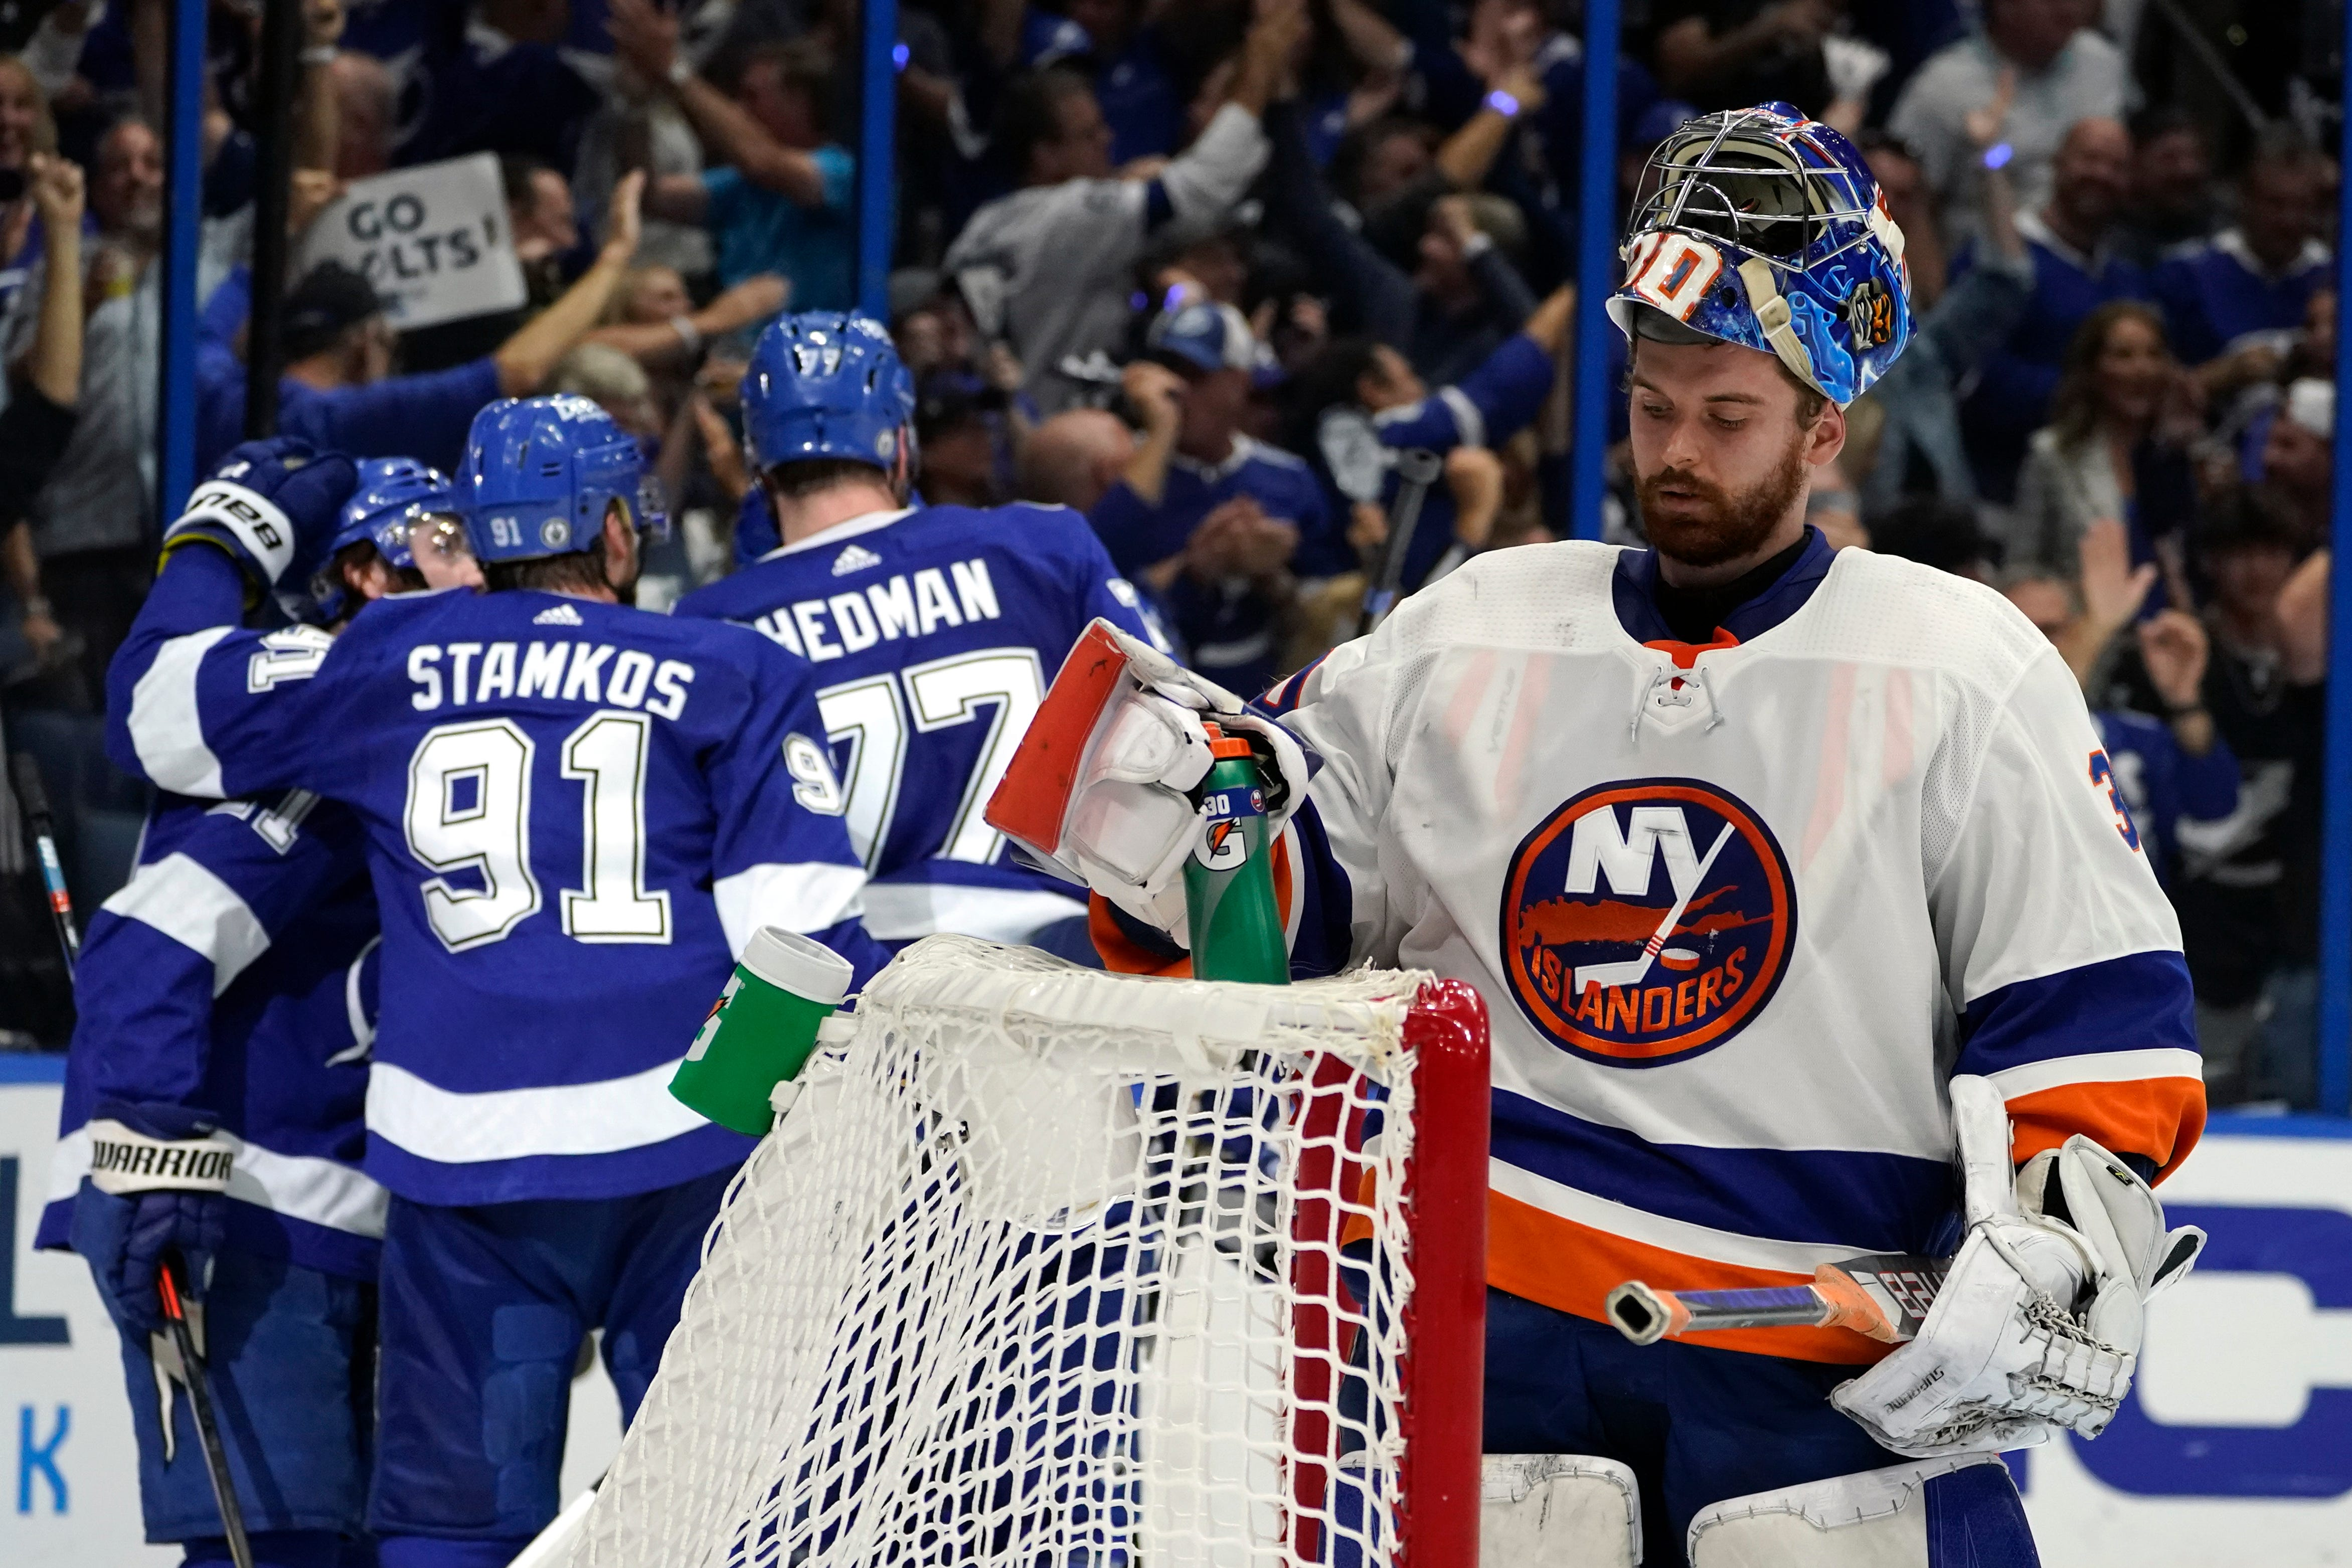 Teachable Moment #3 - What Happened to the Islanders?